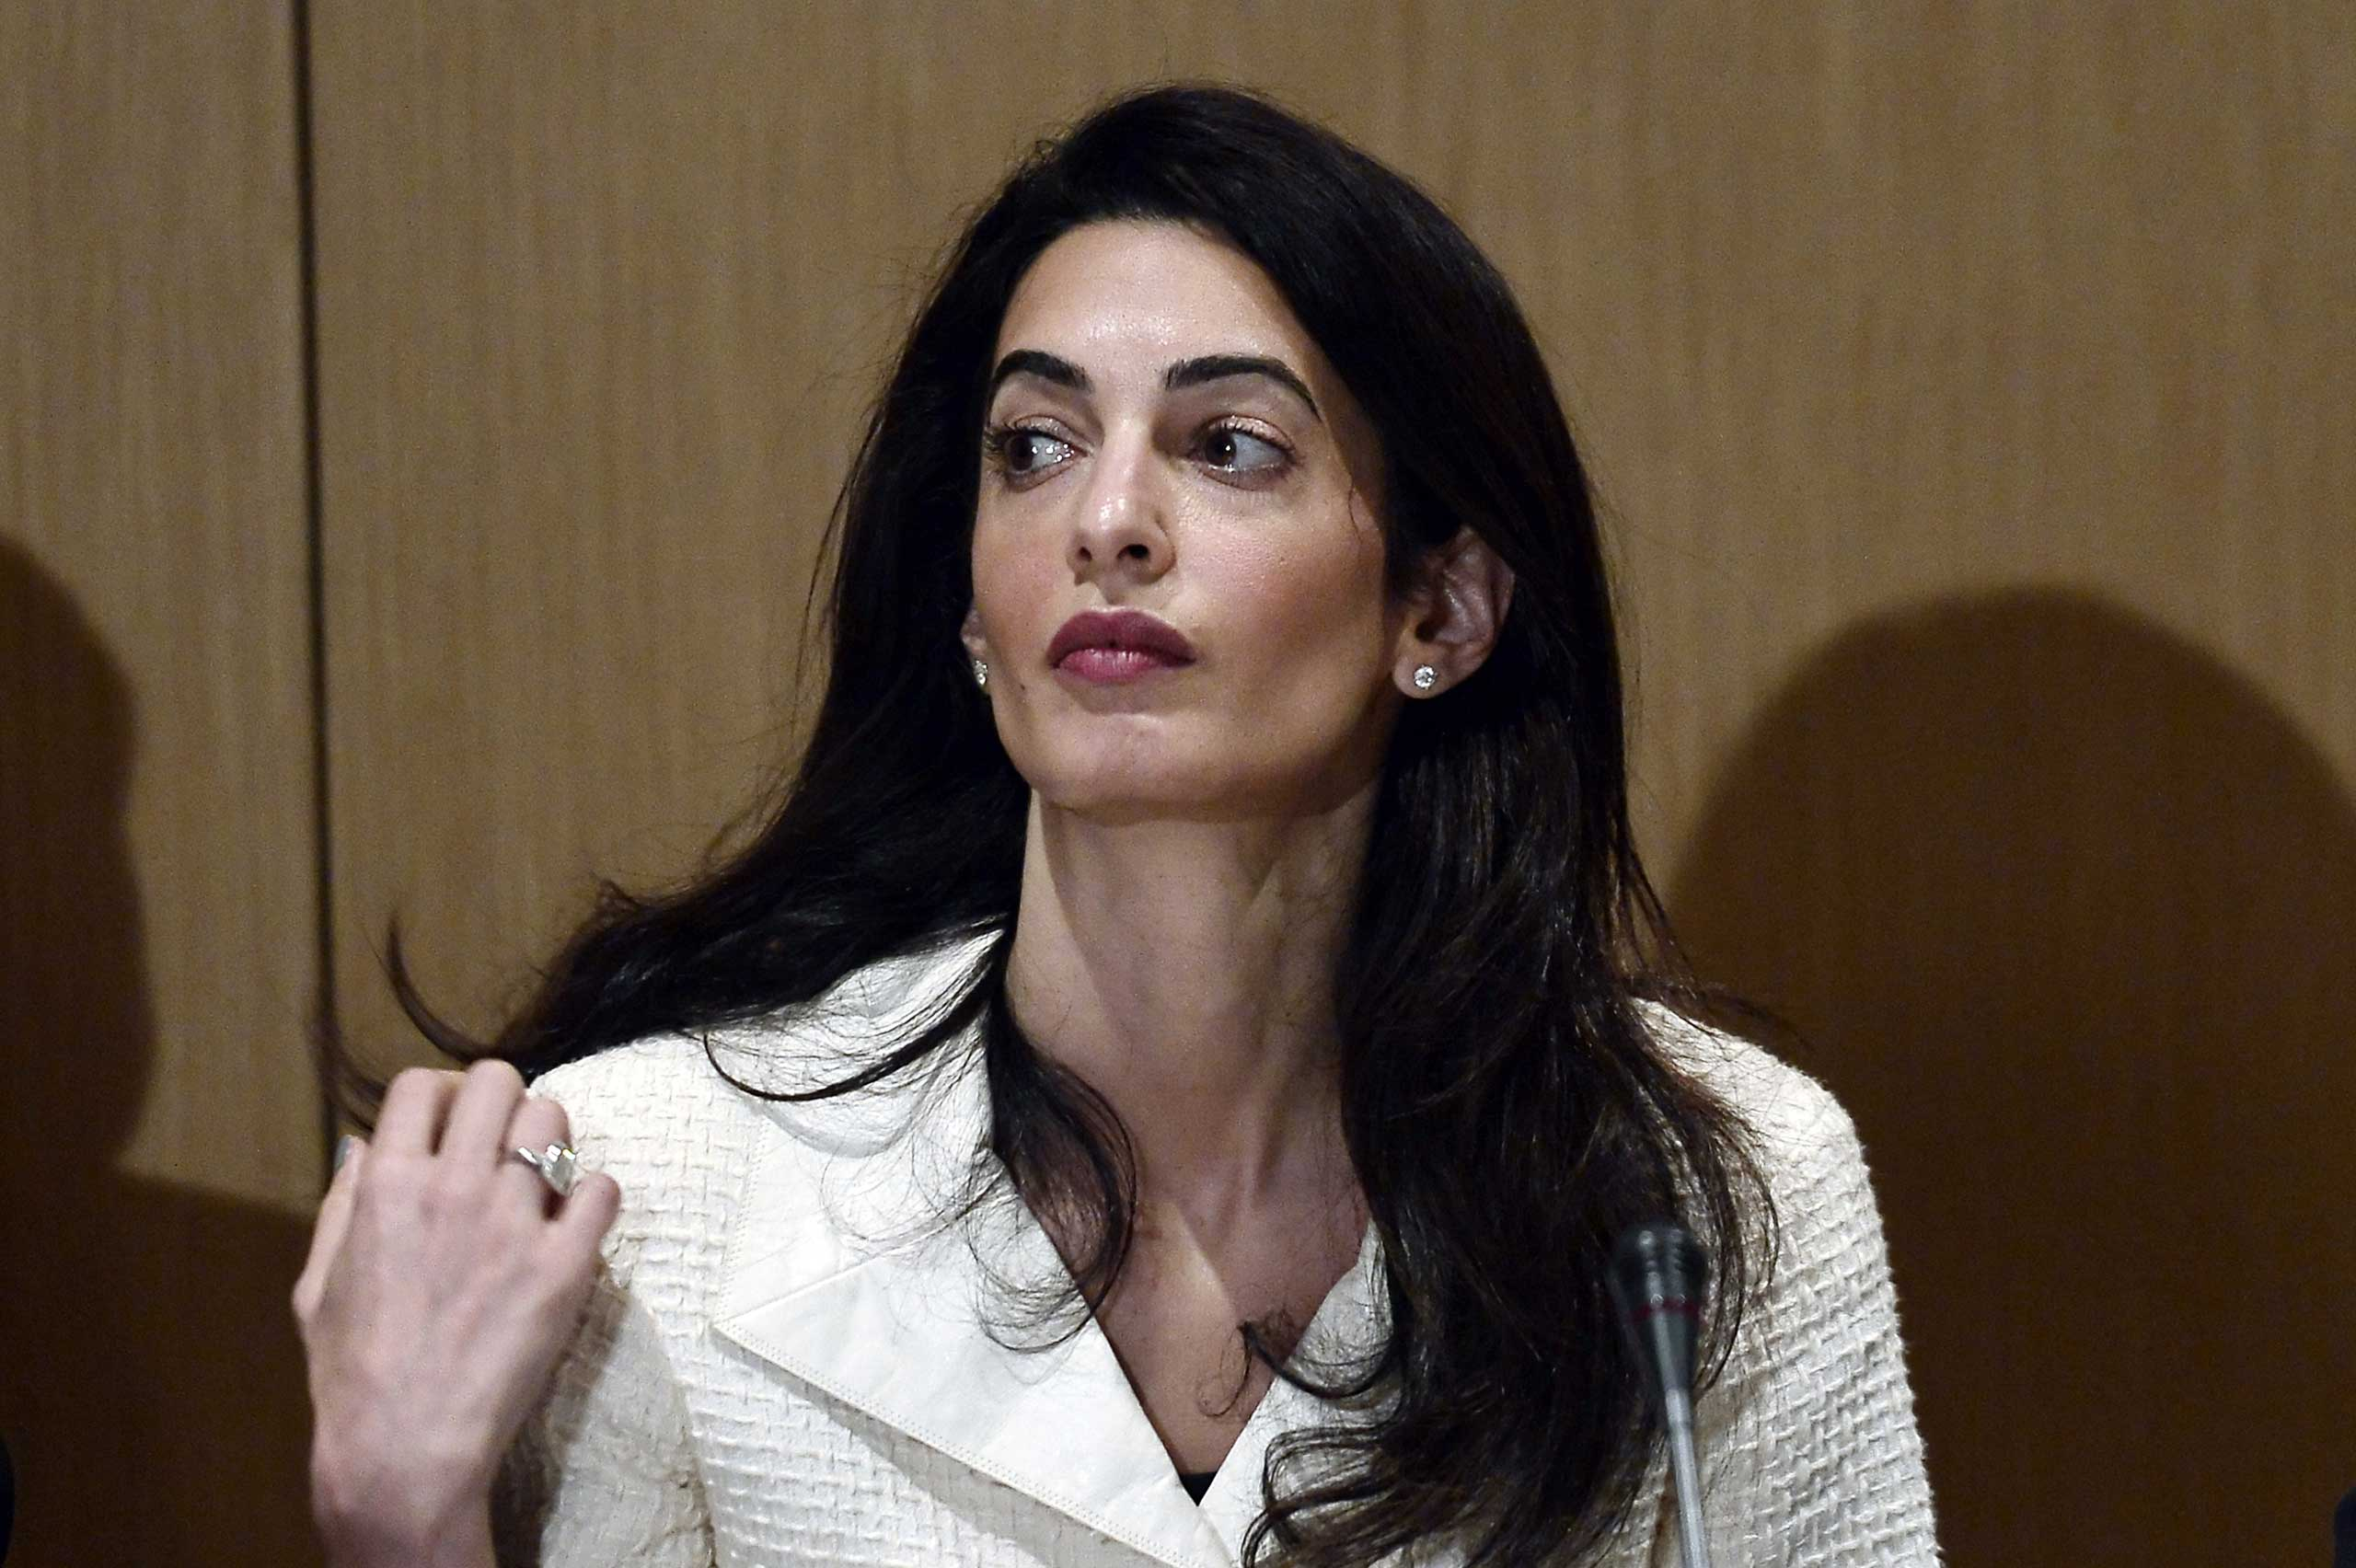 Human-rights lawyer Amal Alamuddin Clooney looks on during a press conference at the Acropolis museum in Athens on Oct. 15, 2014.